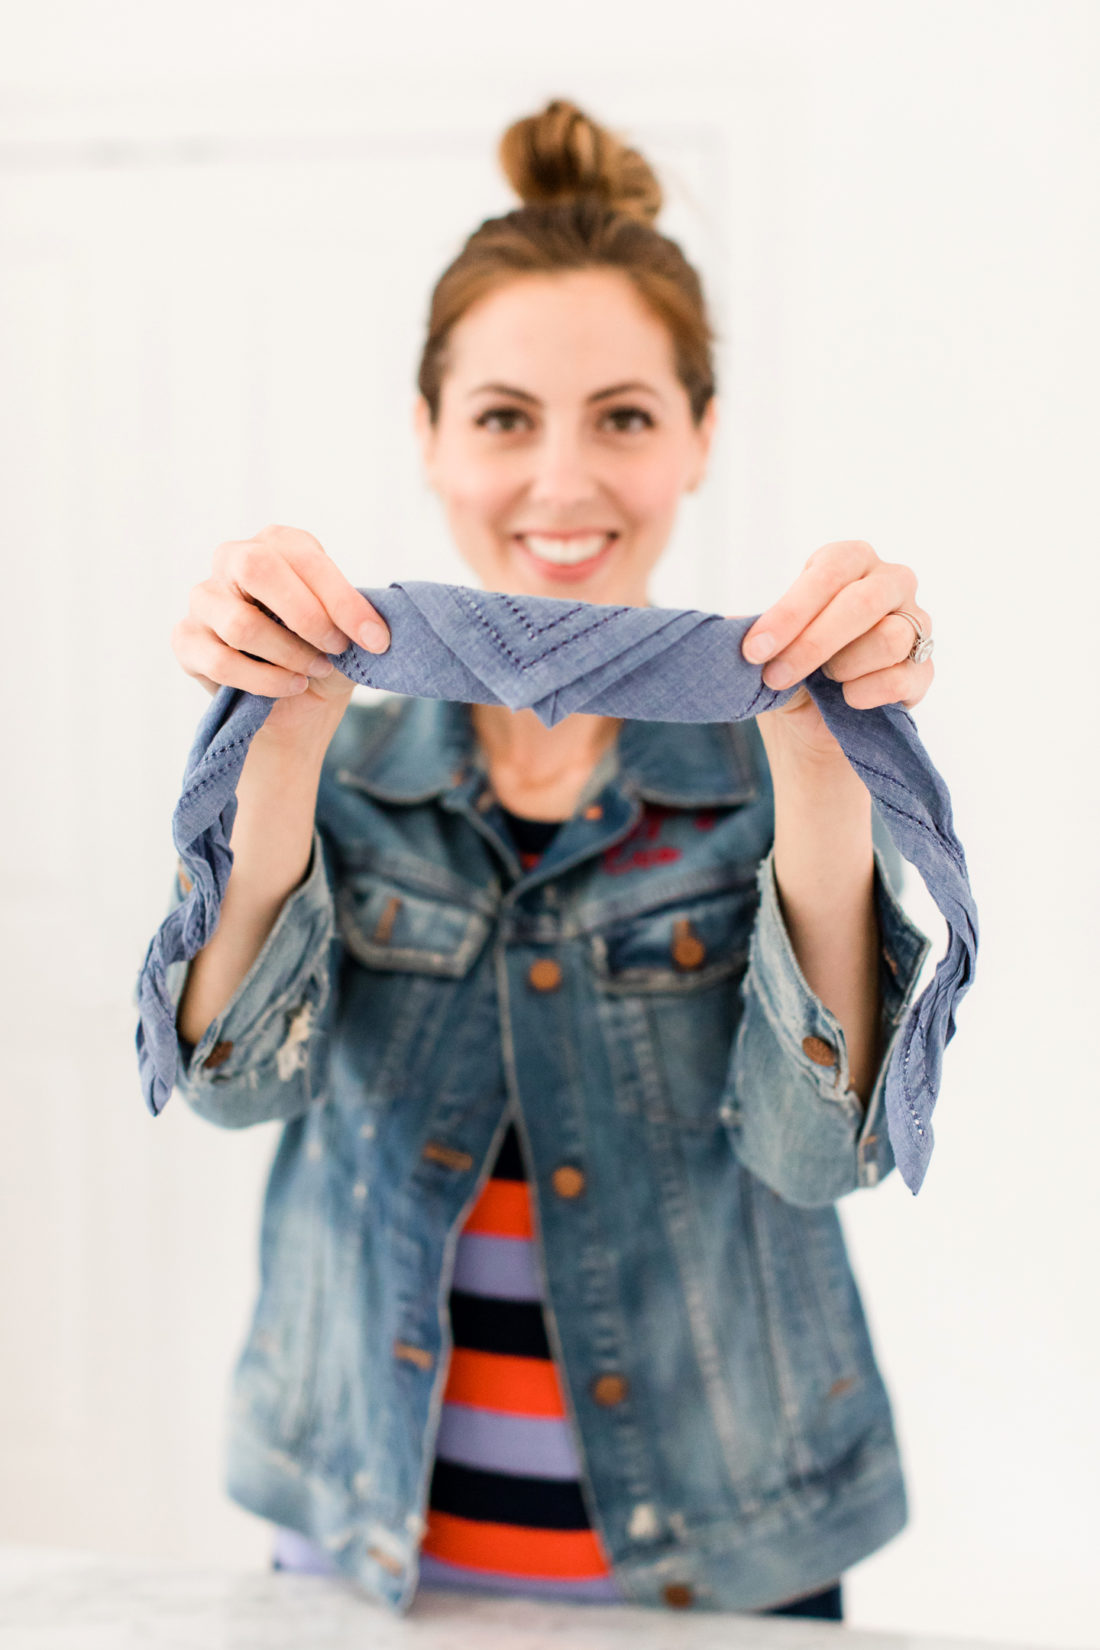 Eva Amurri Martino wears a striped dress and denim jacket, and prepares to tie a linen kerchief around her bun